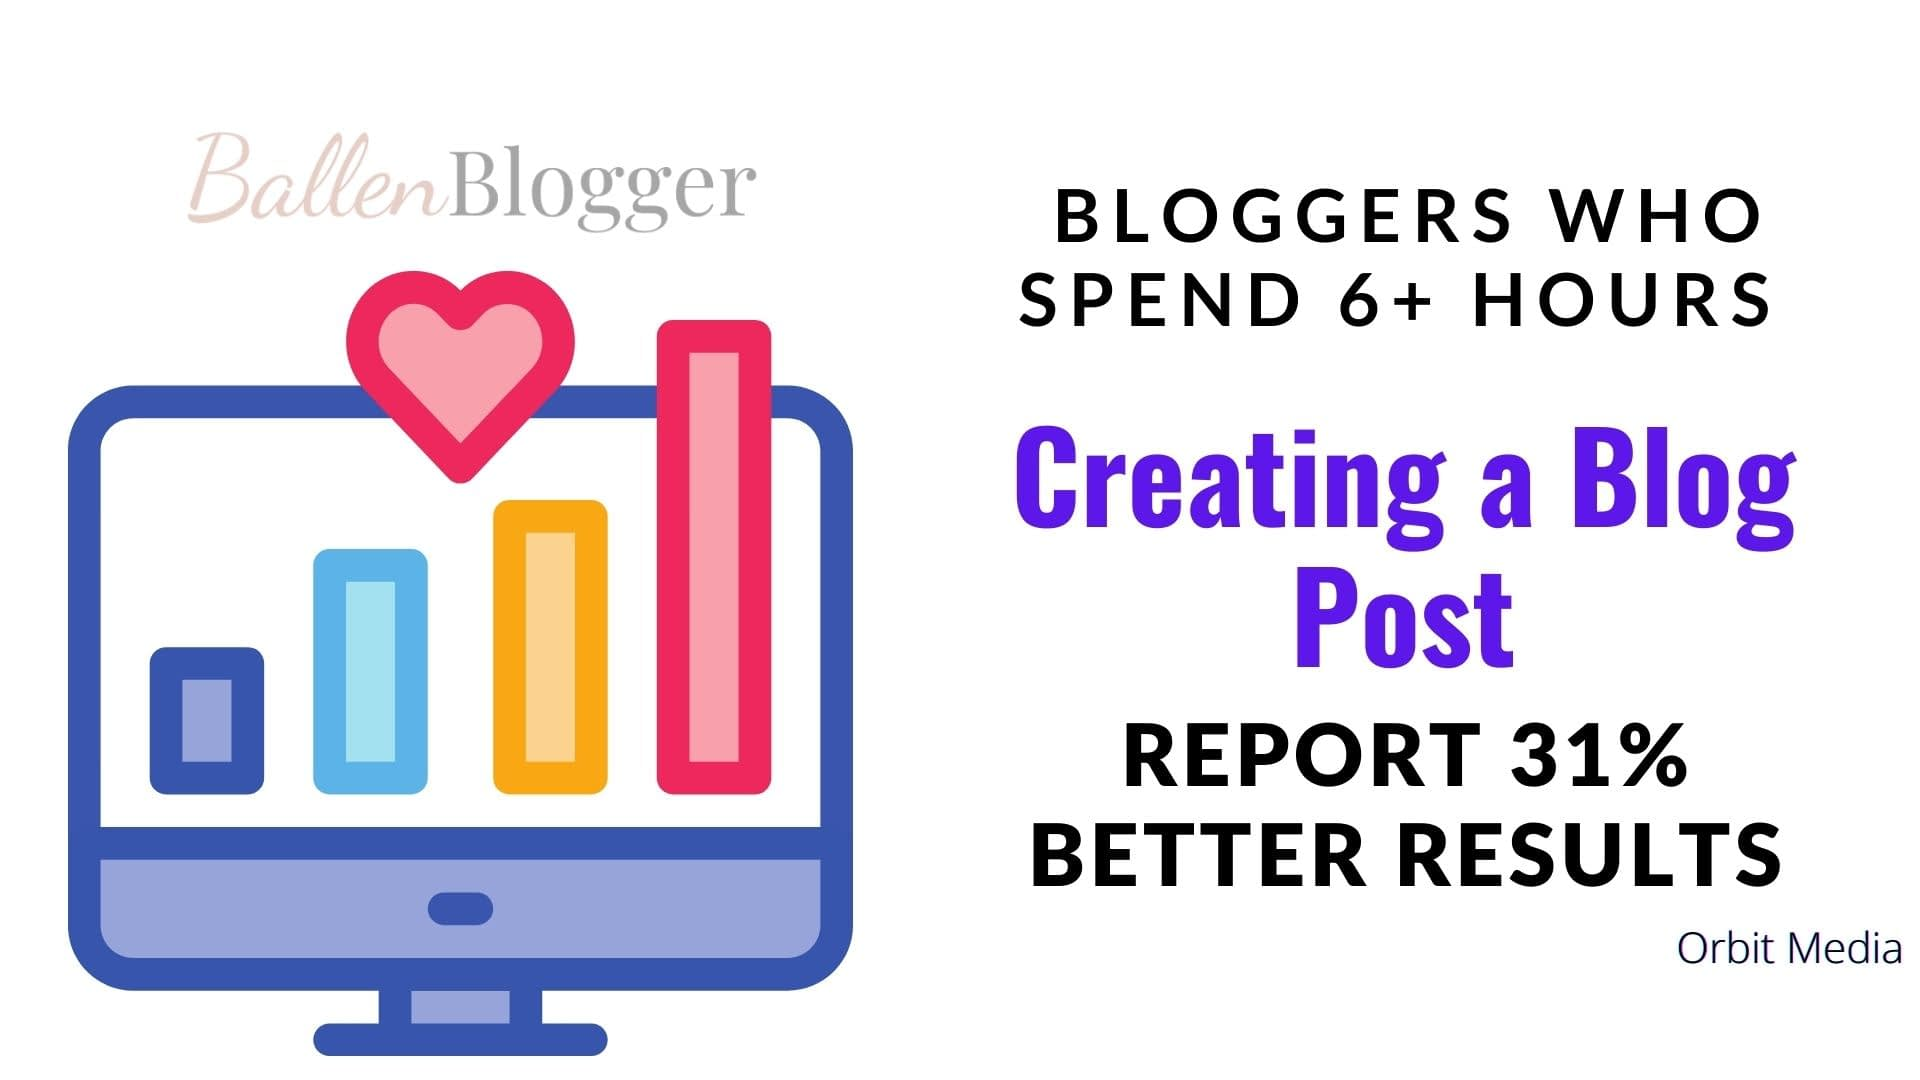 Bloggers who spend 6+ Hours Creating a Post report 31% Better Results according to Orbit Media